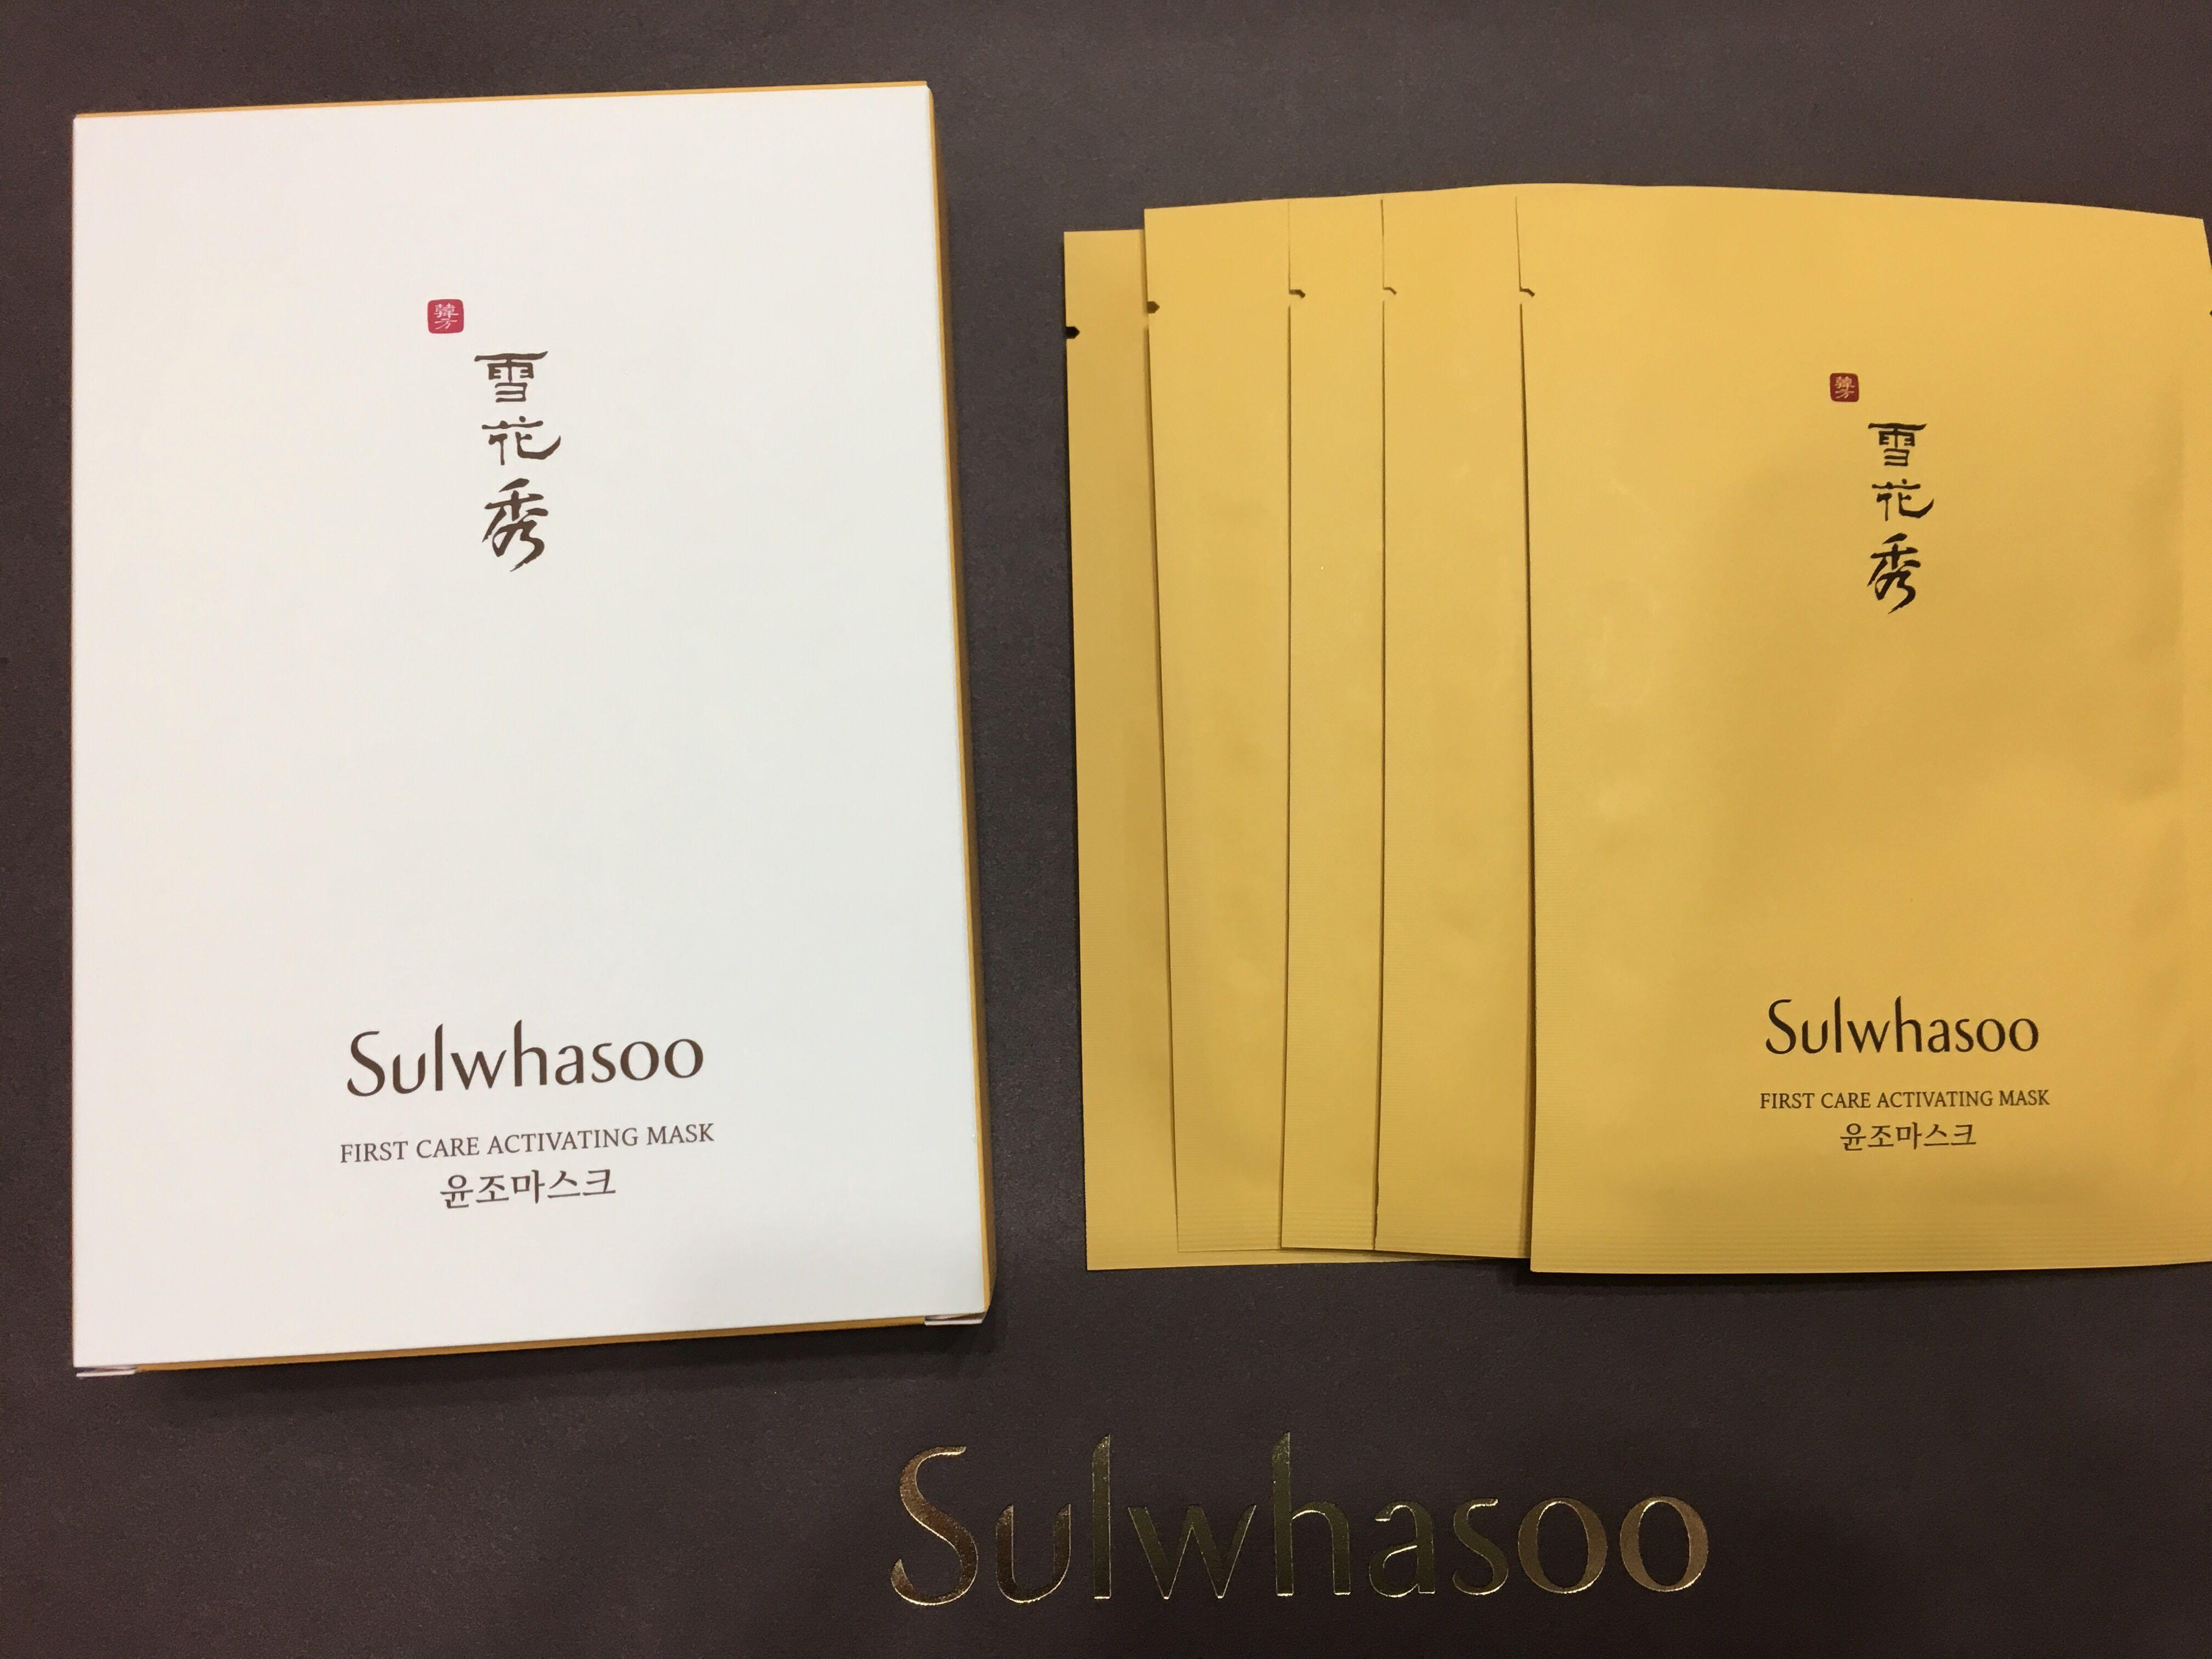 ❄️ 正貨 盒裝 雪花秀 潤燥再生精華面膜 5片 Sulwhasoo First Care Activating Mask